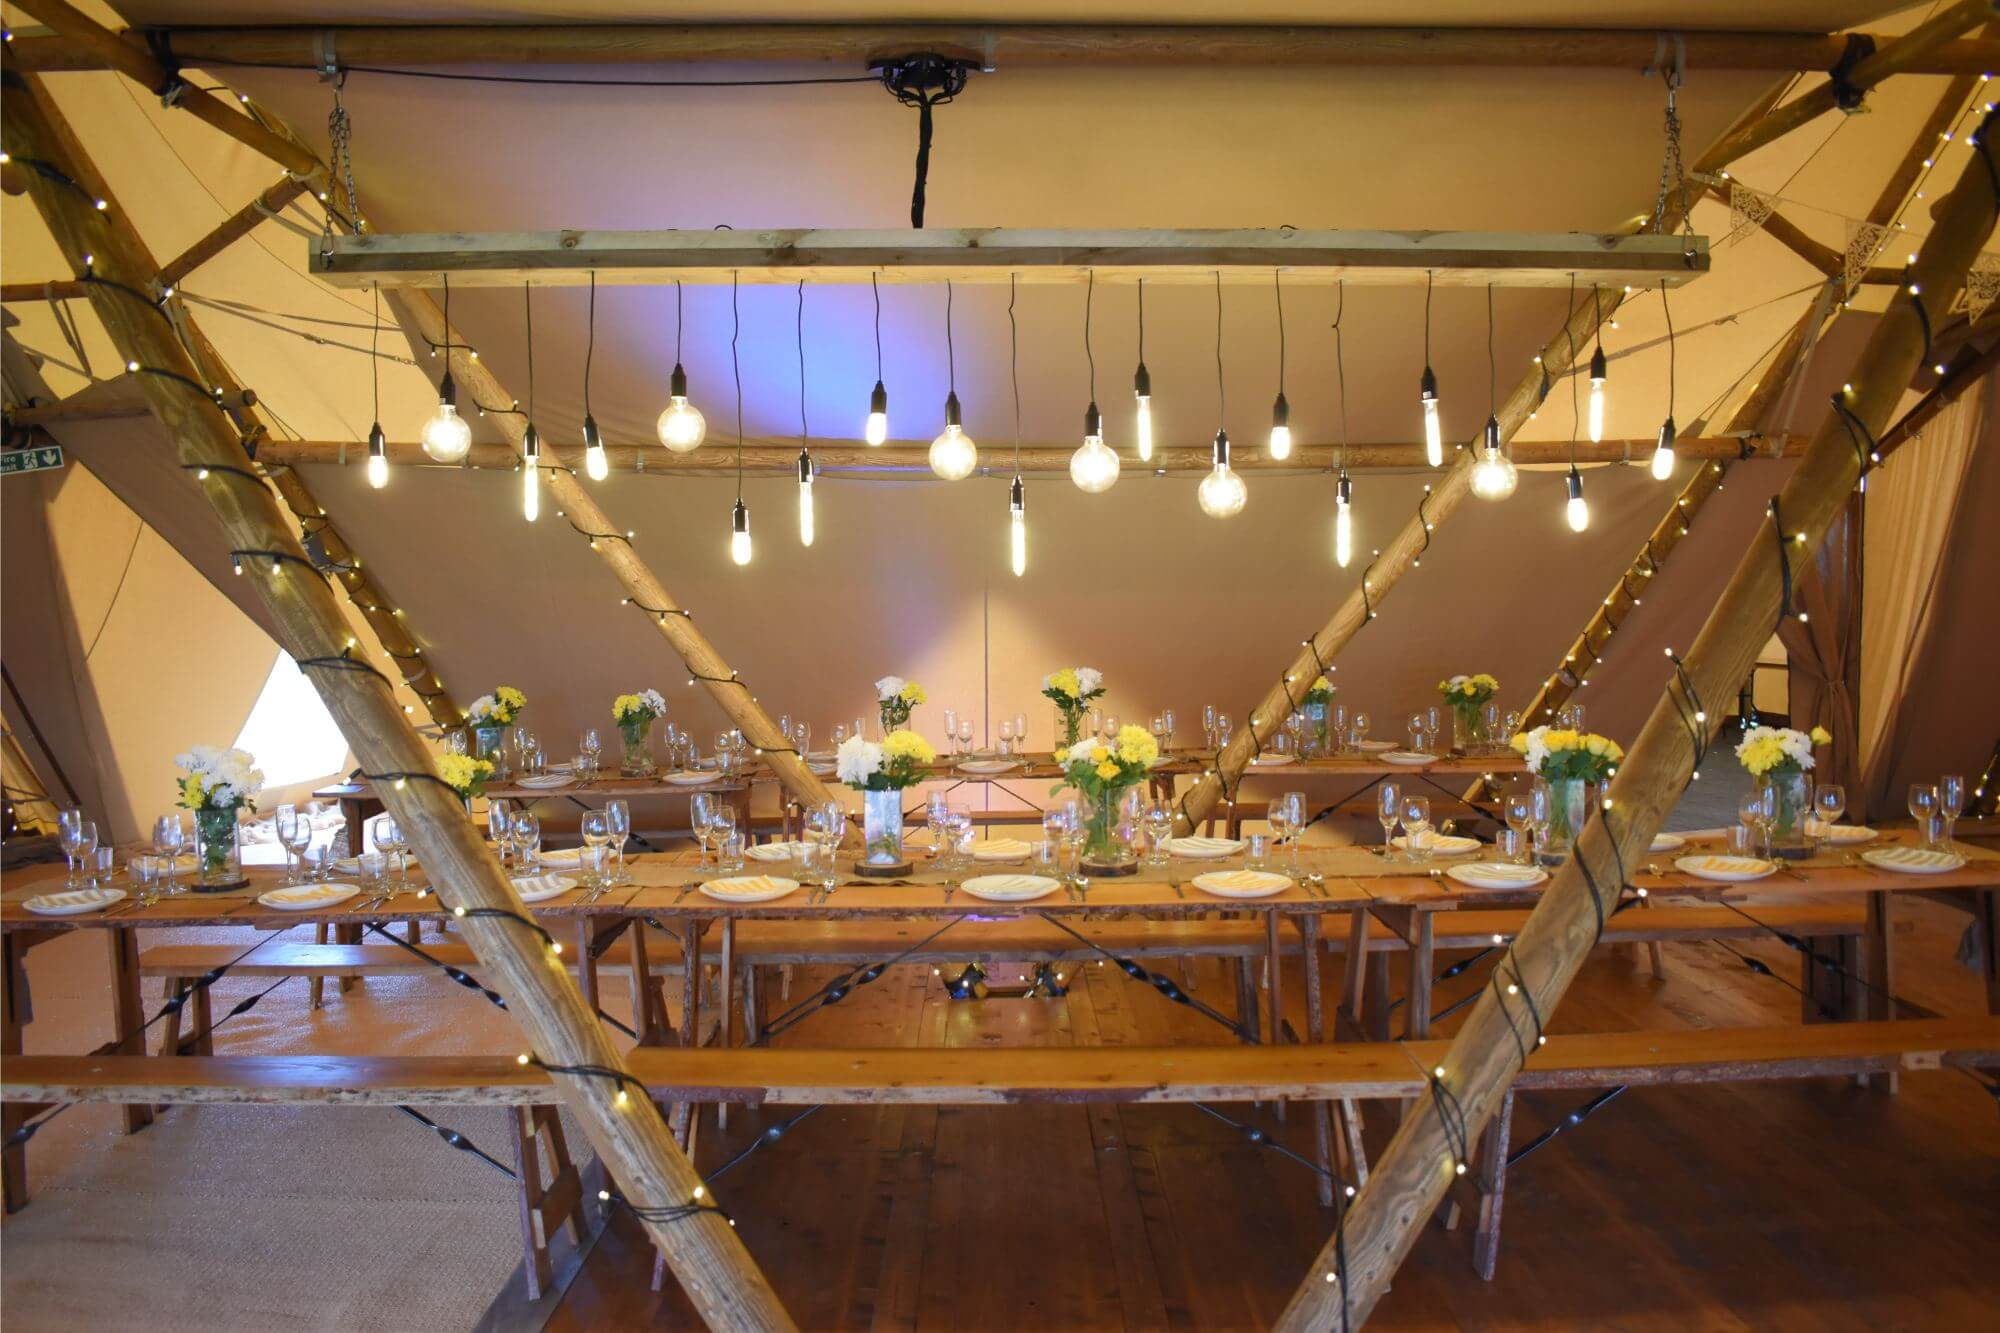 A photograph of the inside of on the the Tipi's. With beautiful lighting and benches for guests to sit on and enjoy food.